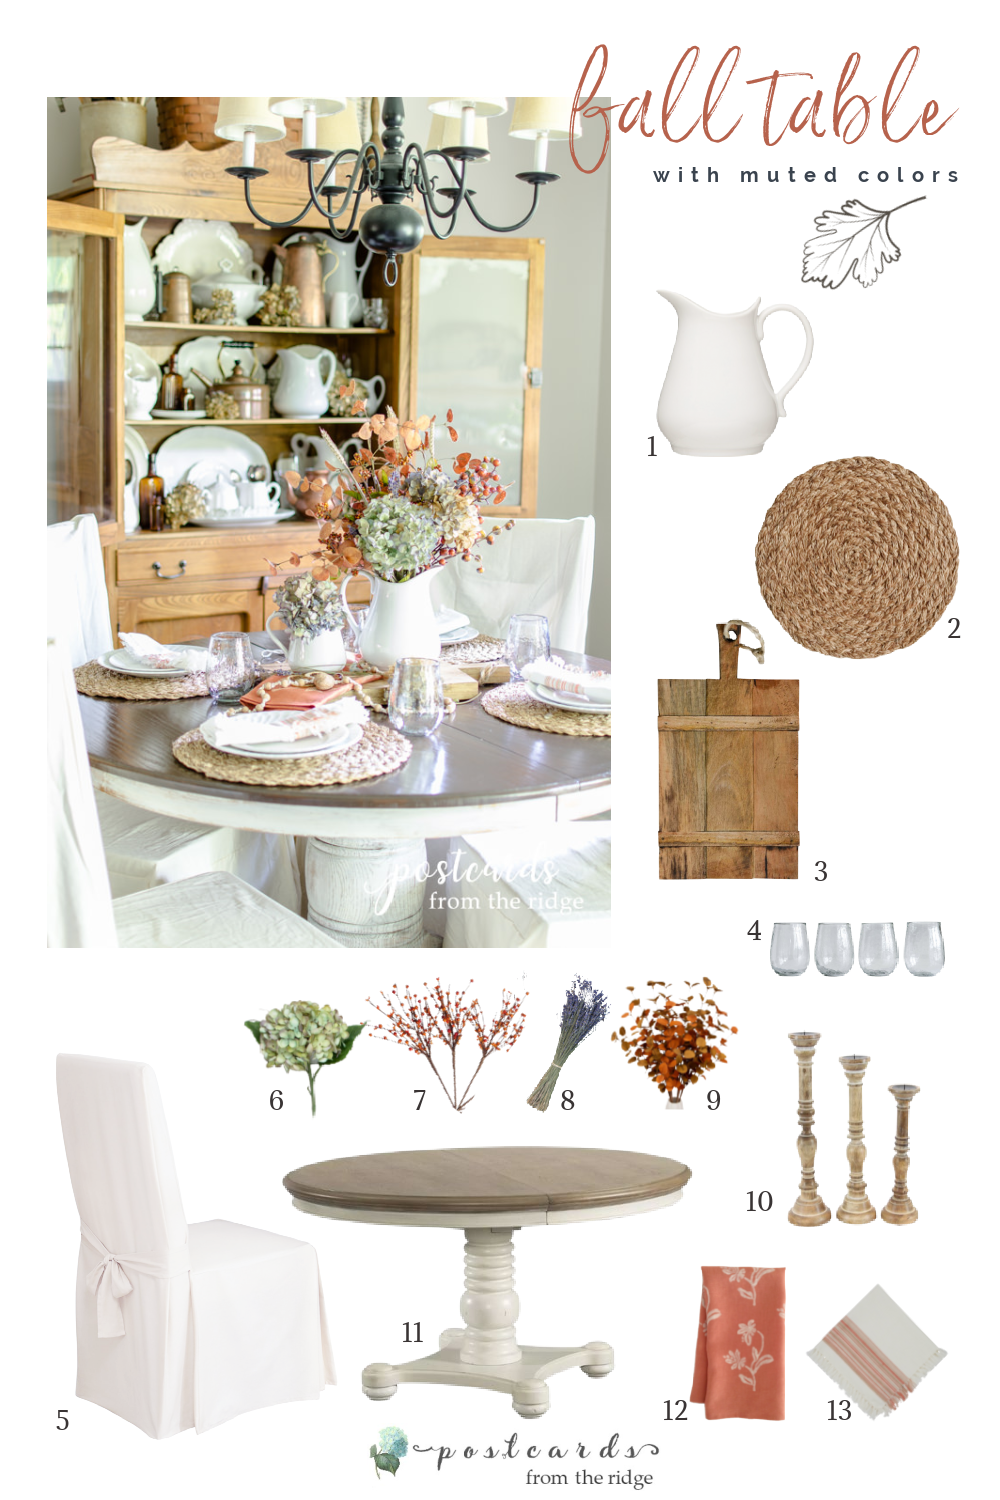 fall table with muted colors and subtle textures